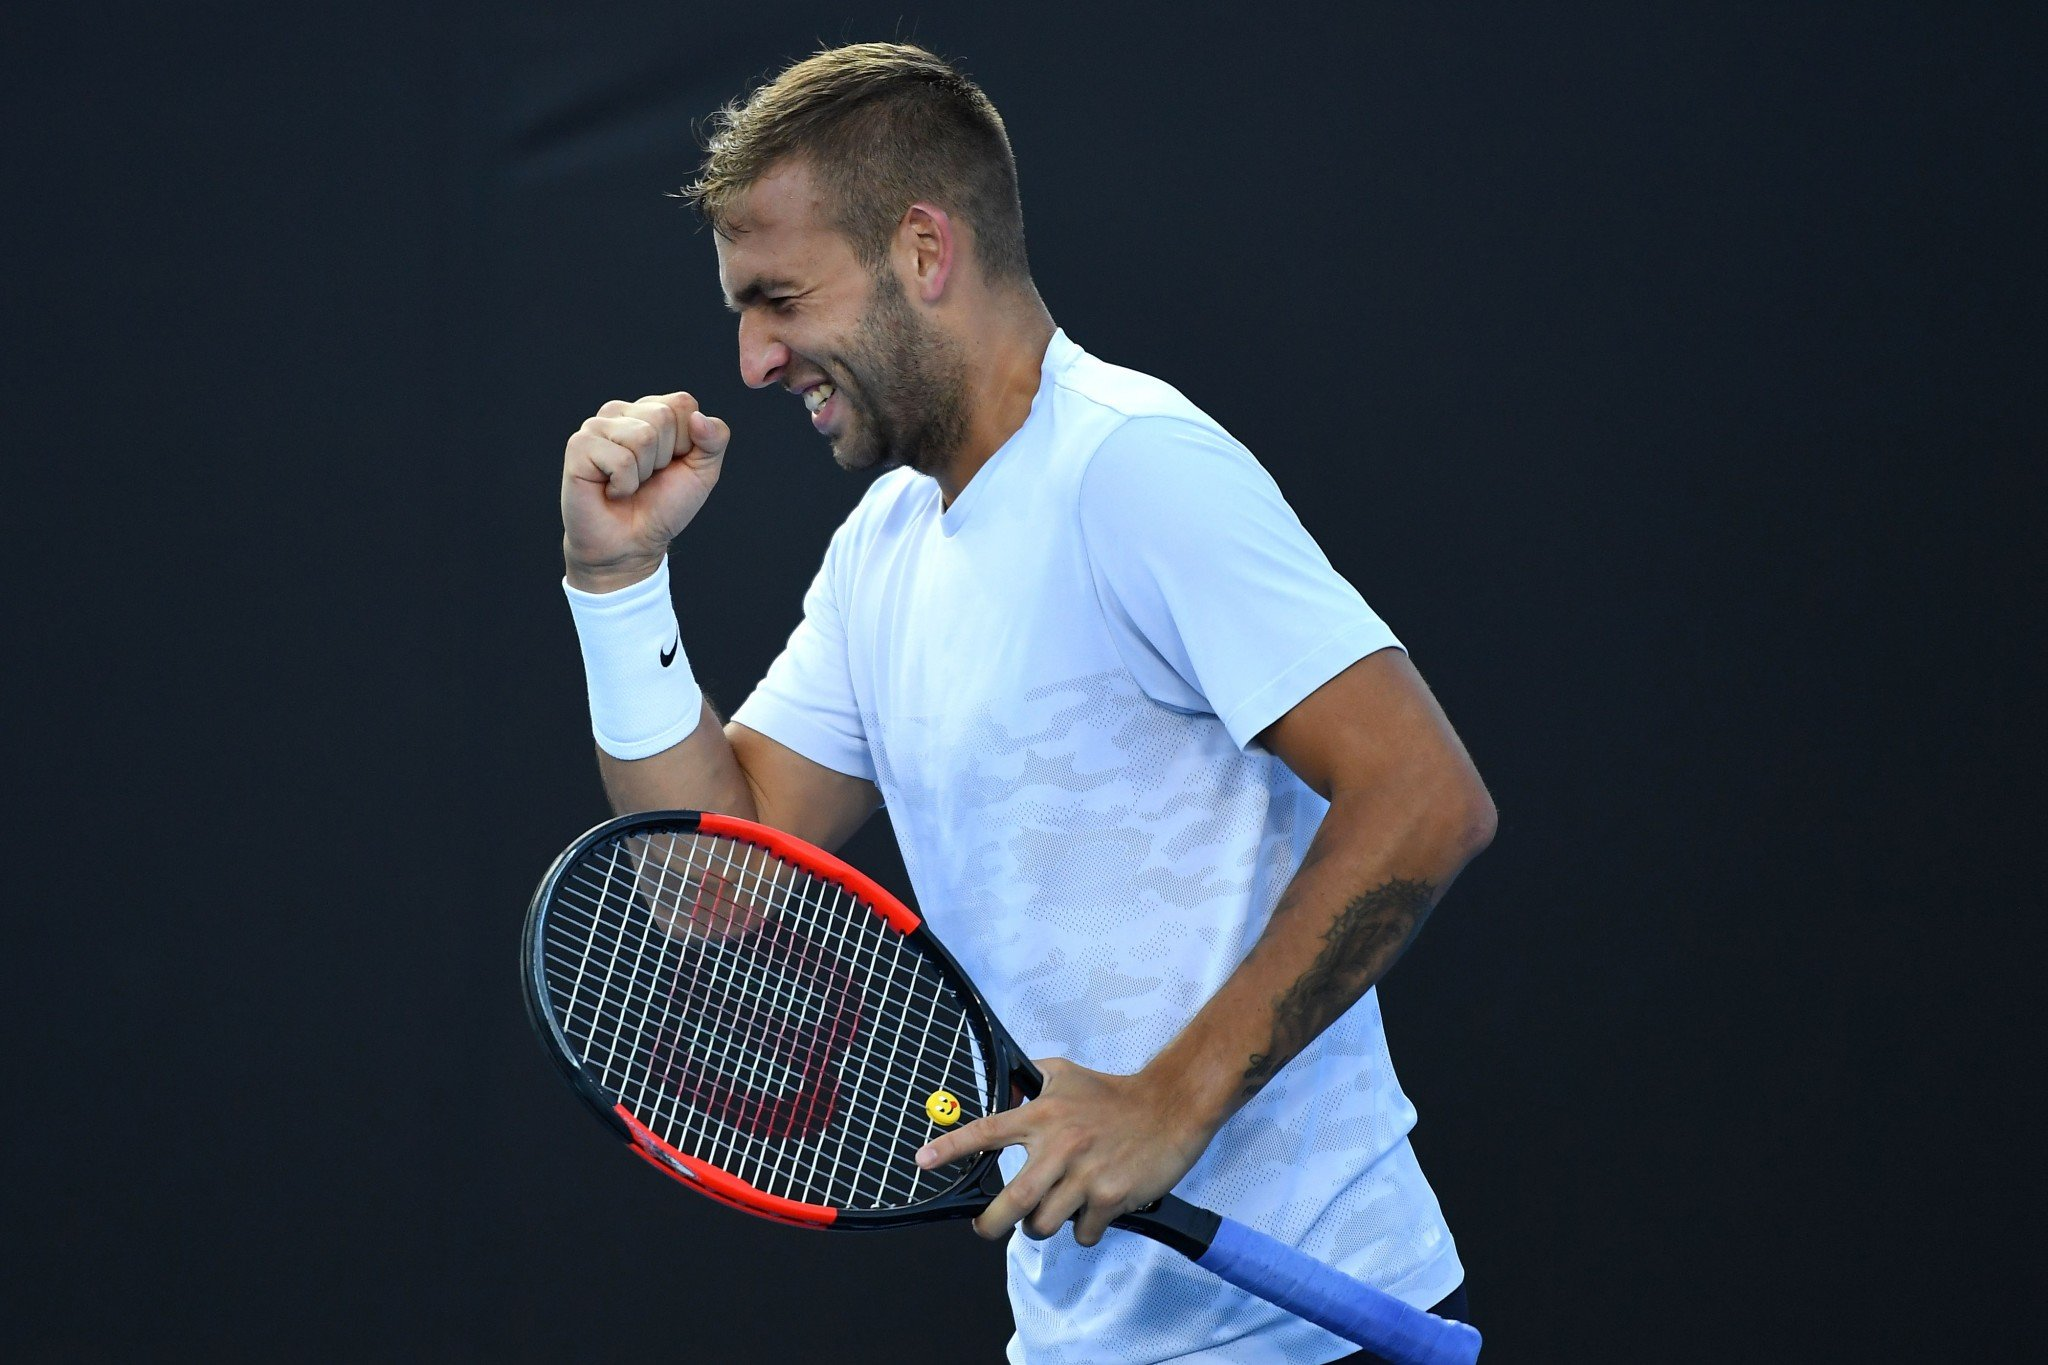 Dan Evans beat Marin Cilic in four sets